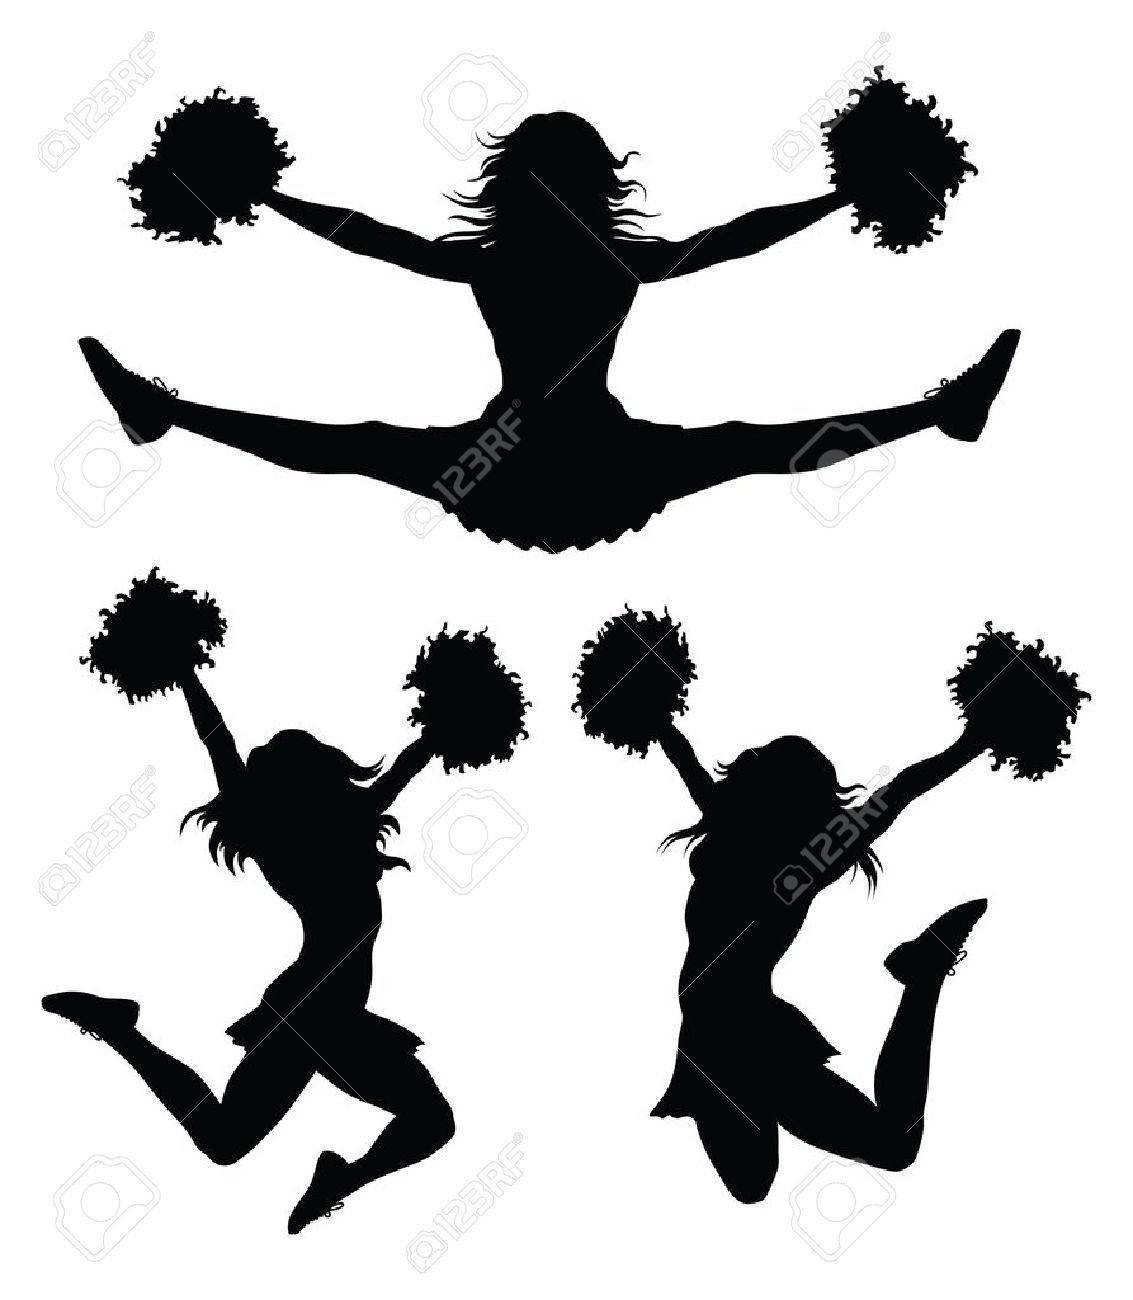 cheerleading silhouette clip art at getdrawings com free for rh getdrawings com Hunting Clip Art Black and White Basketball Clip Art Black and White